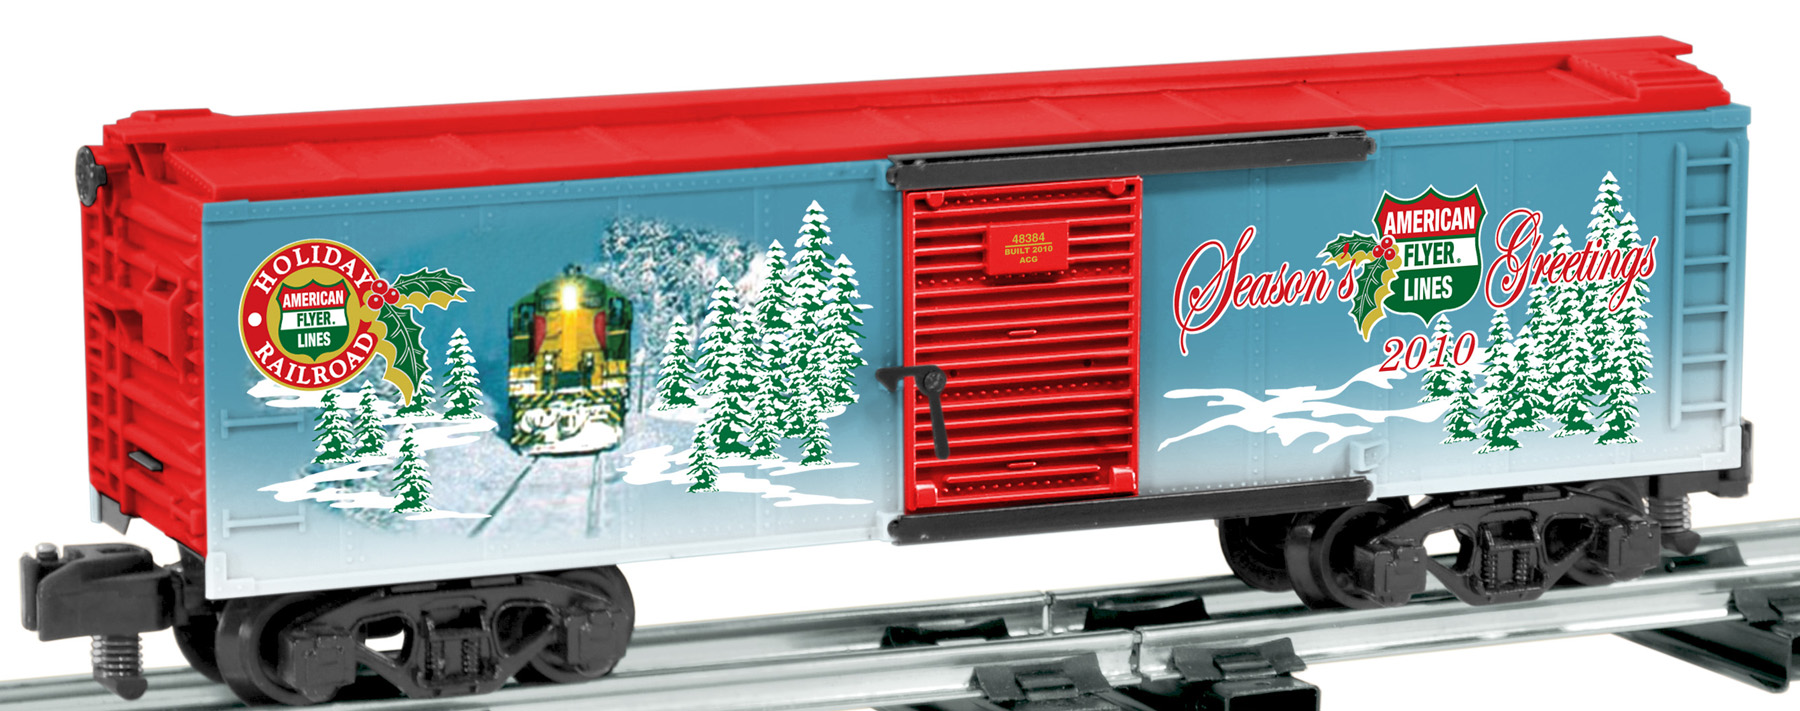 American Flyer 2010 Holiday Boxcar